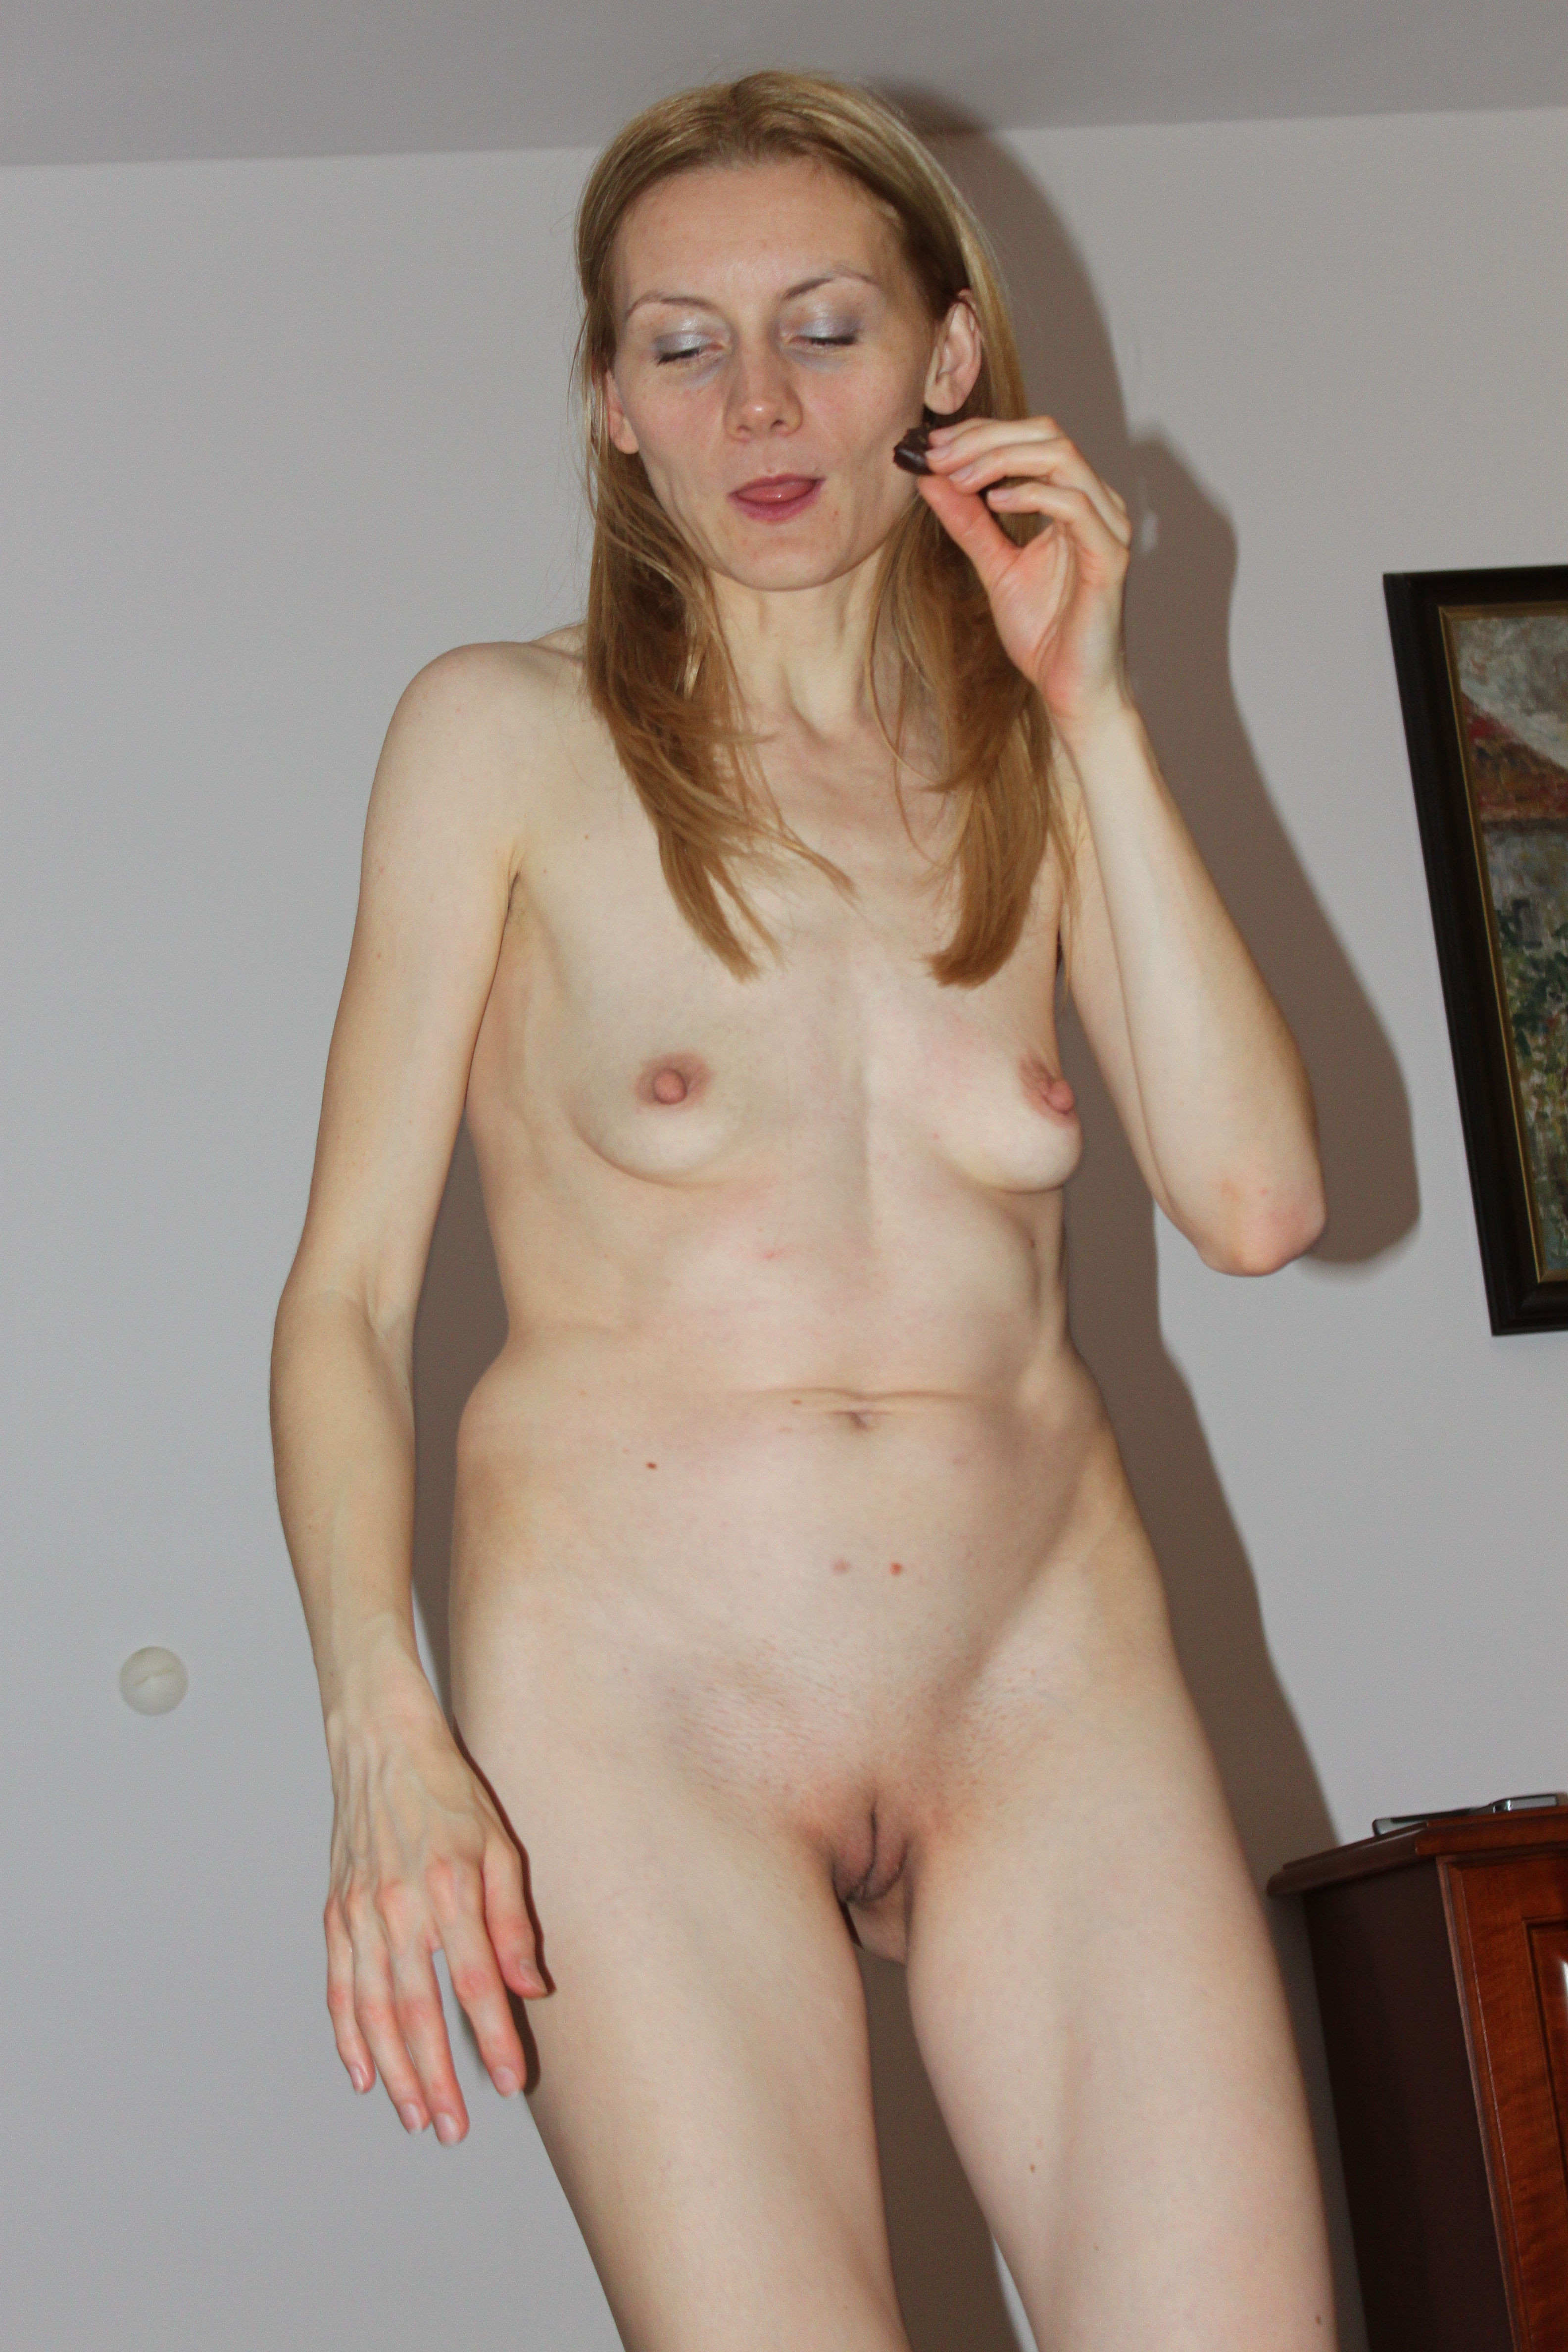 Thin older women naked sex photo